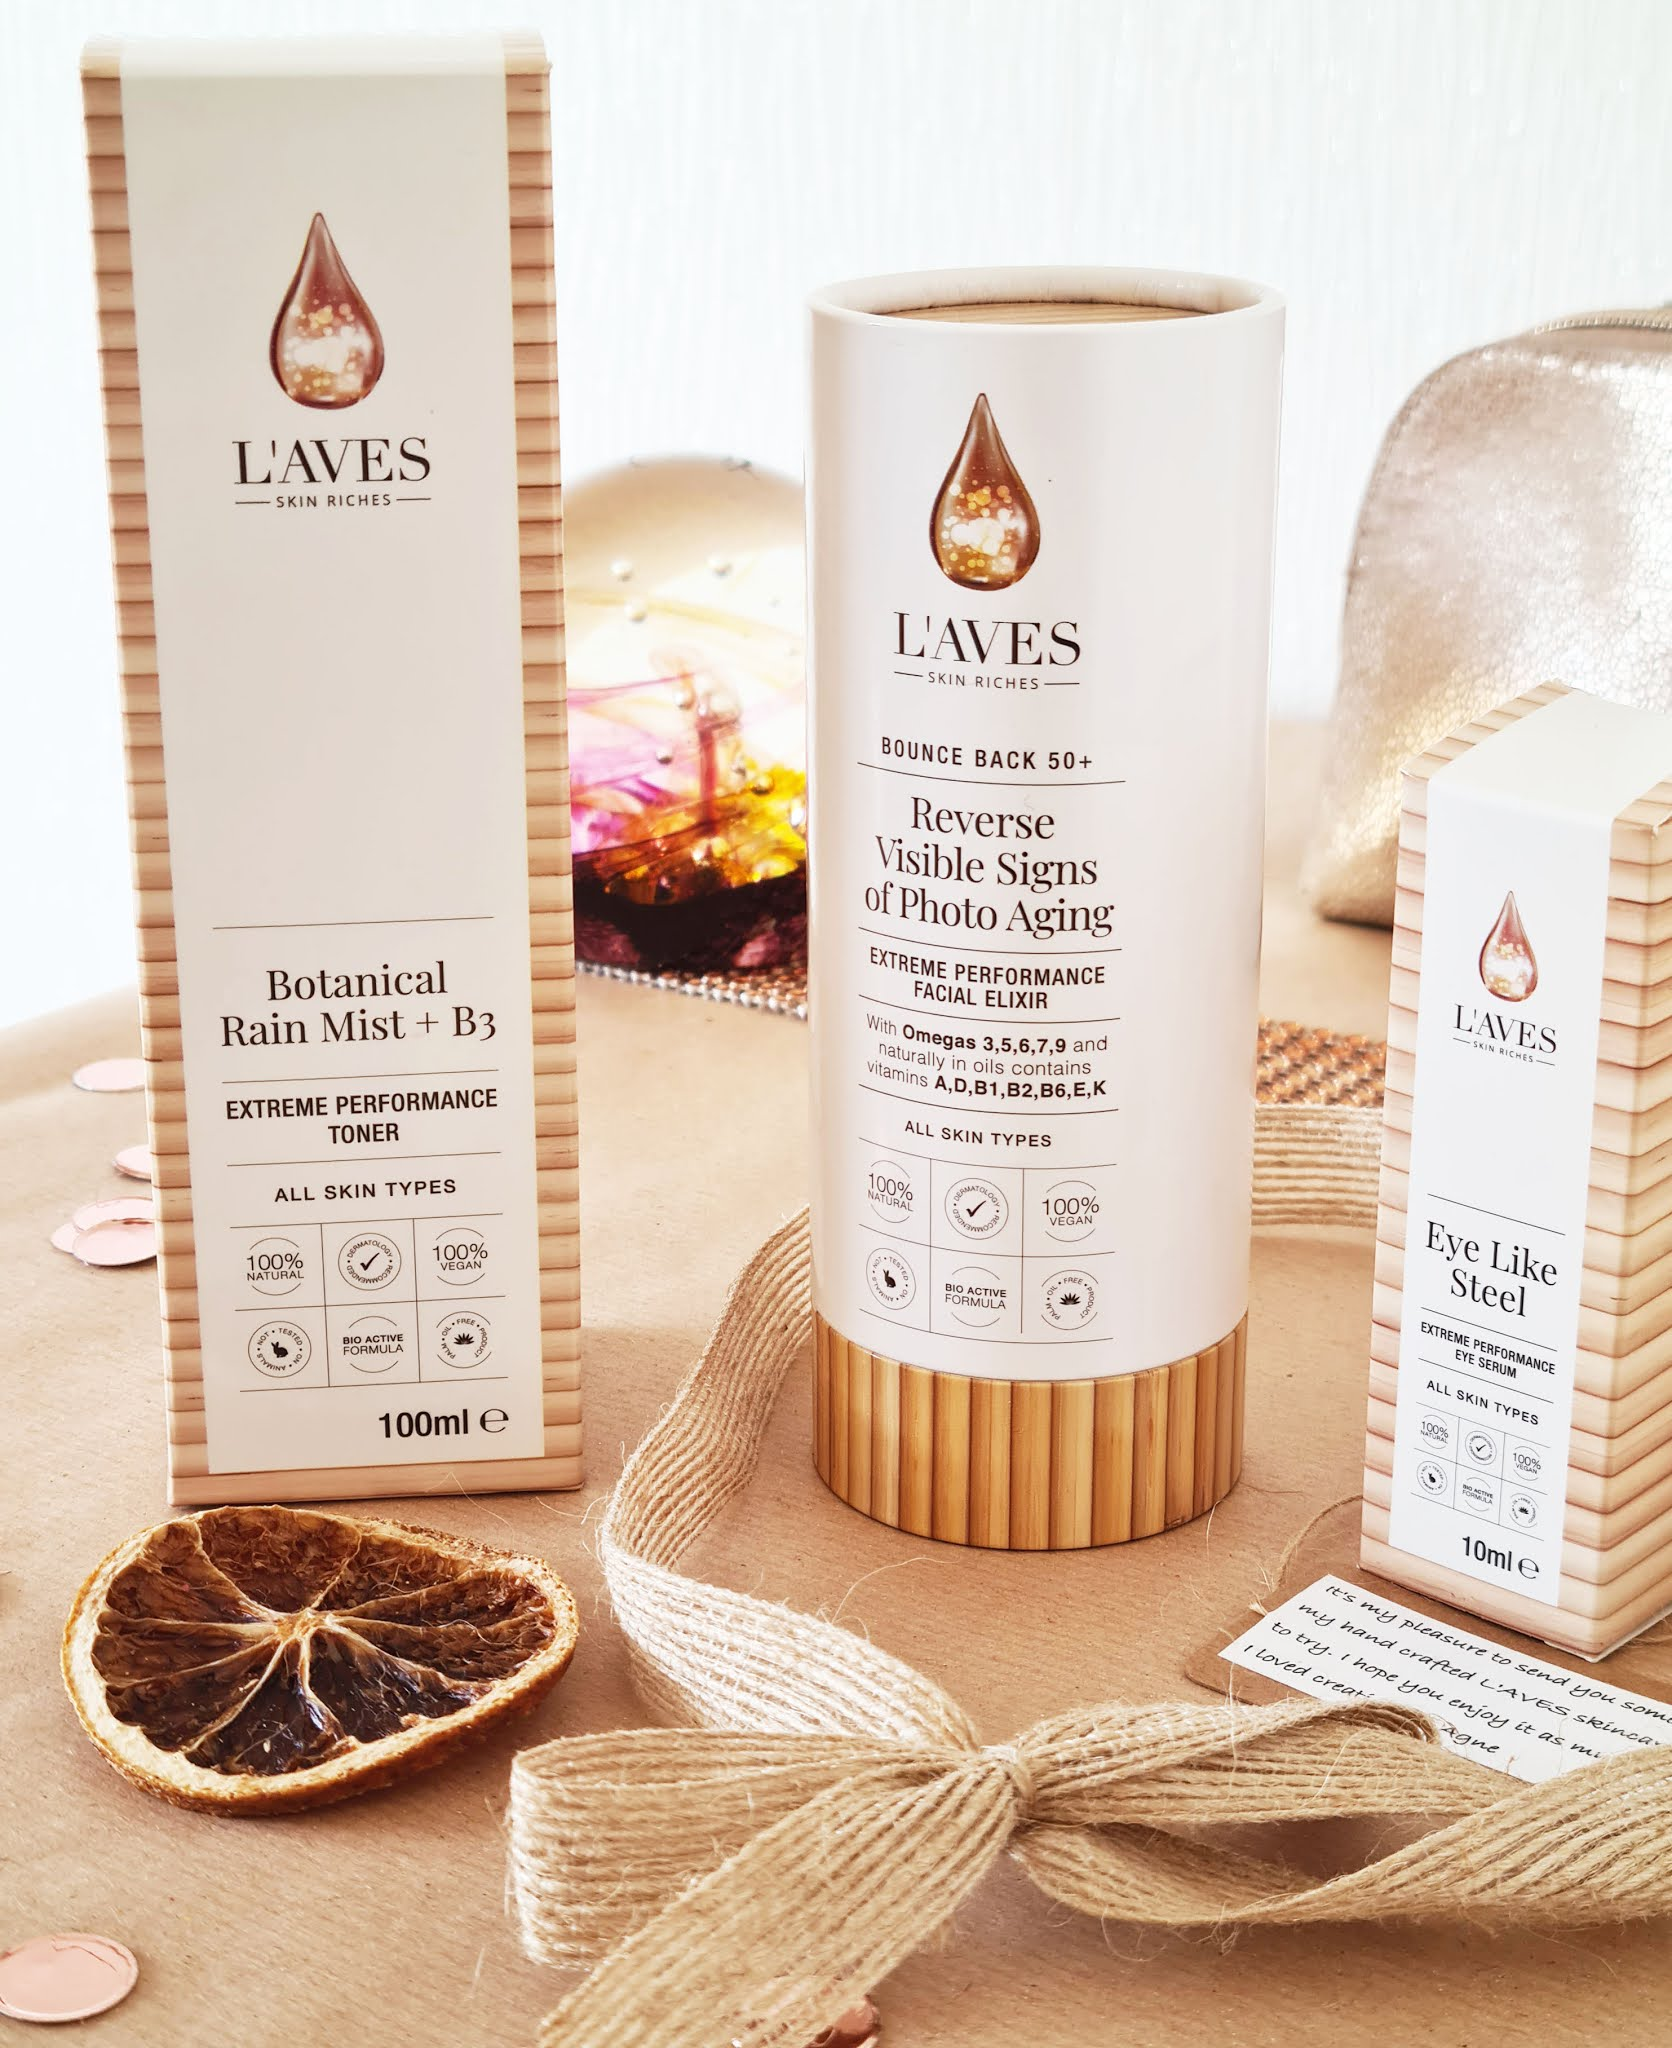 Products from the L'AVES vegan skincare ranges reviewed by Is This Mutton blog